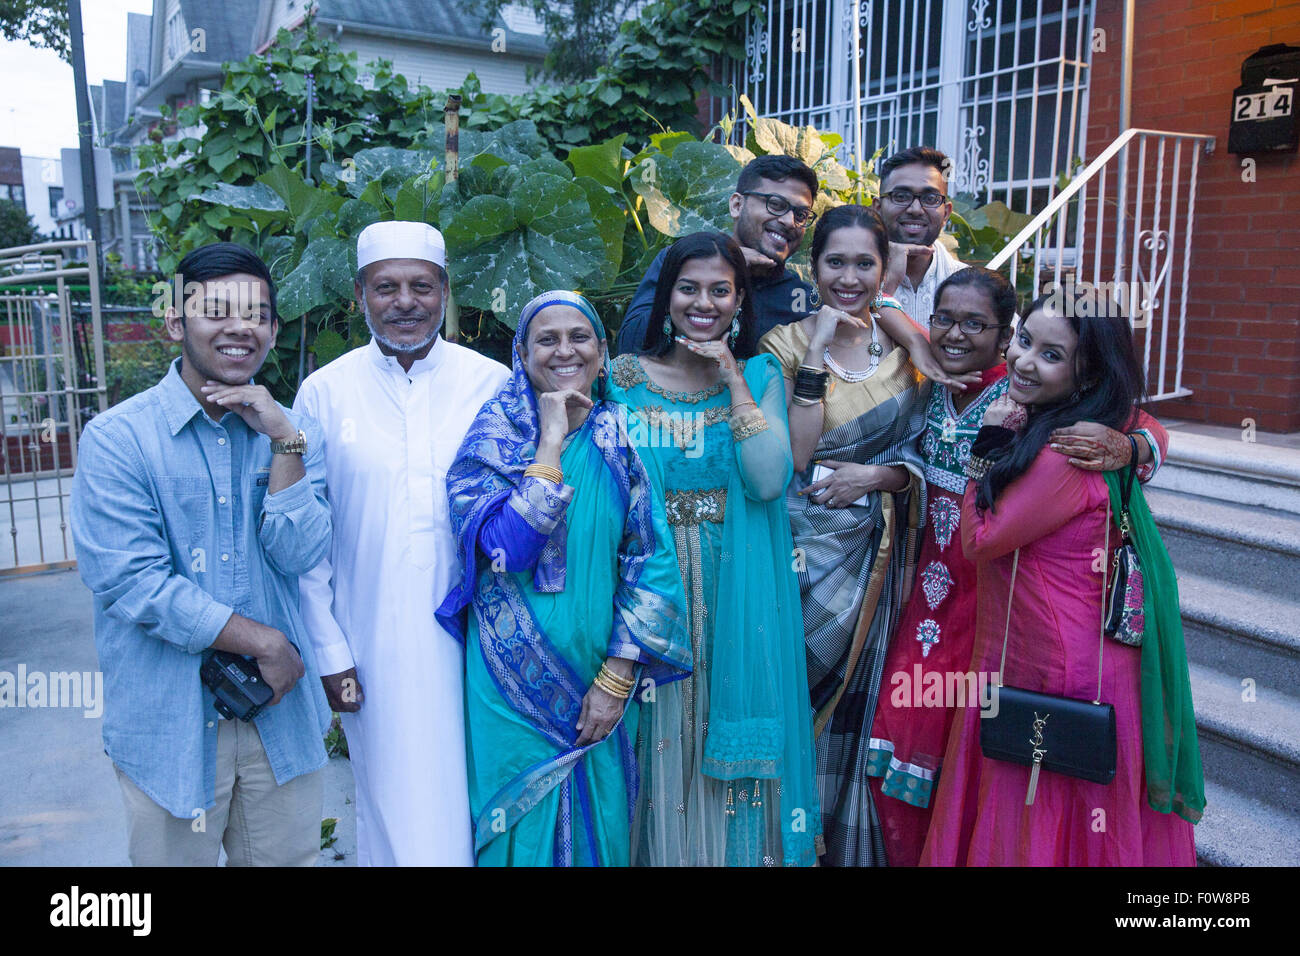 Bangladeshi American family dressed for the Eid holiday celebration after the month of Ramadan goofing around for - Stock Image